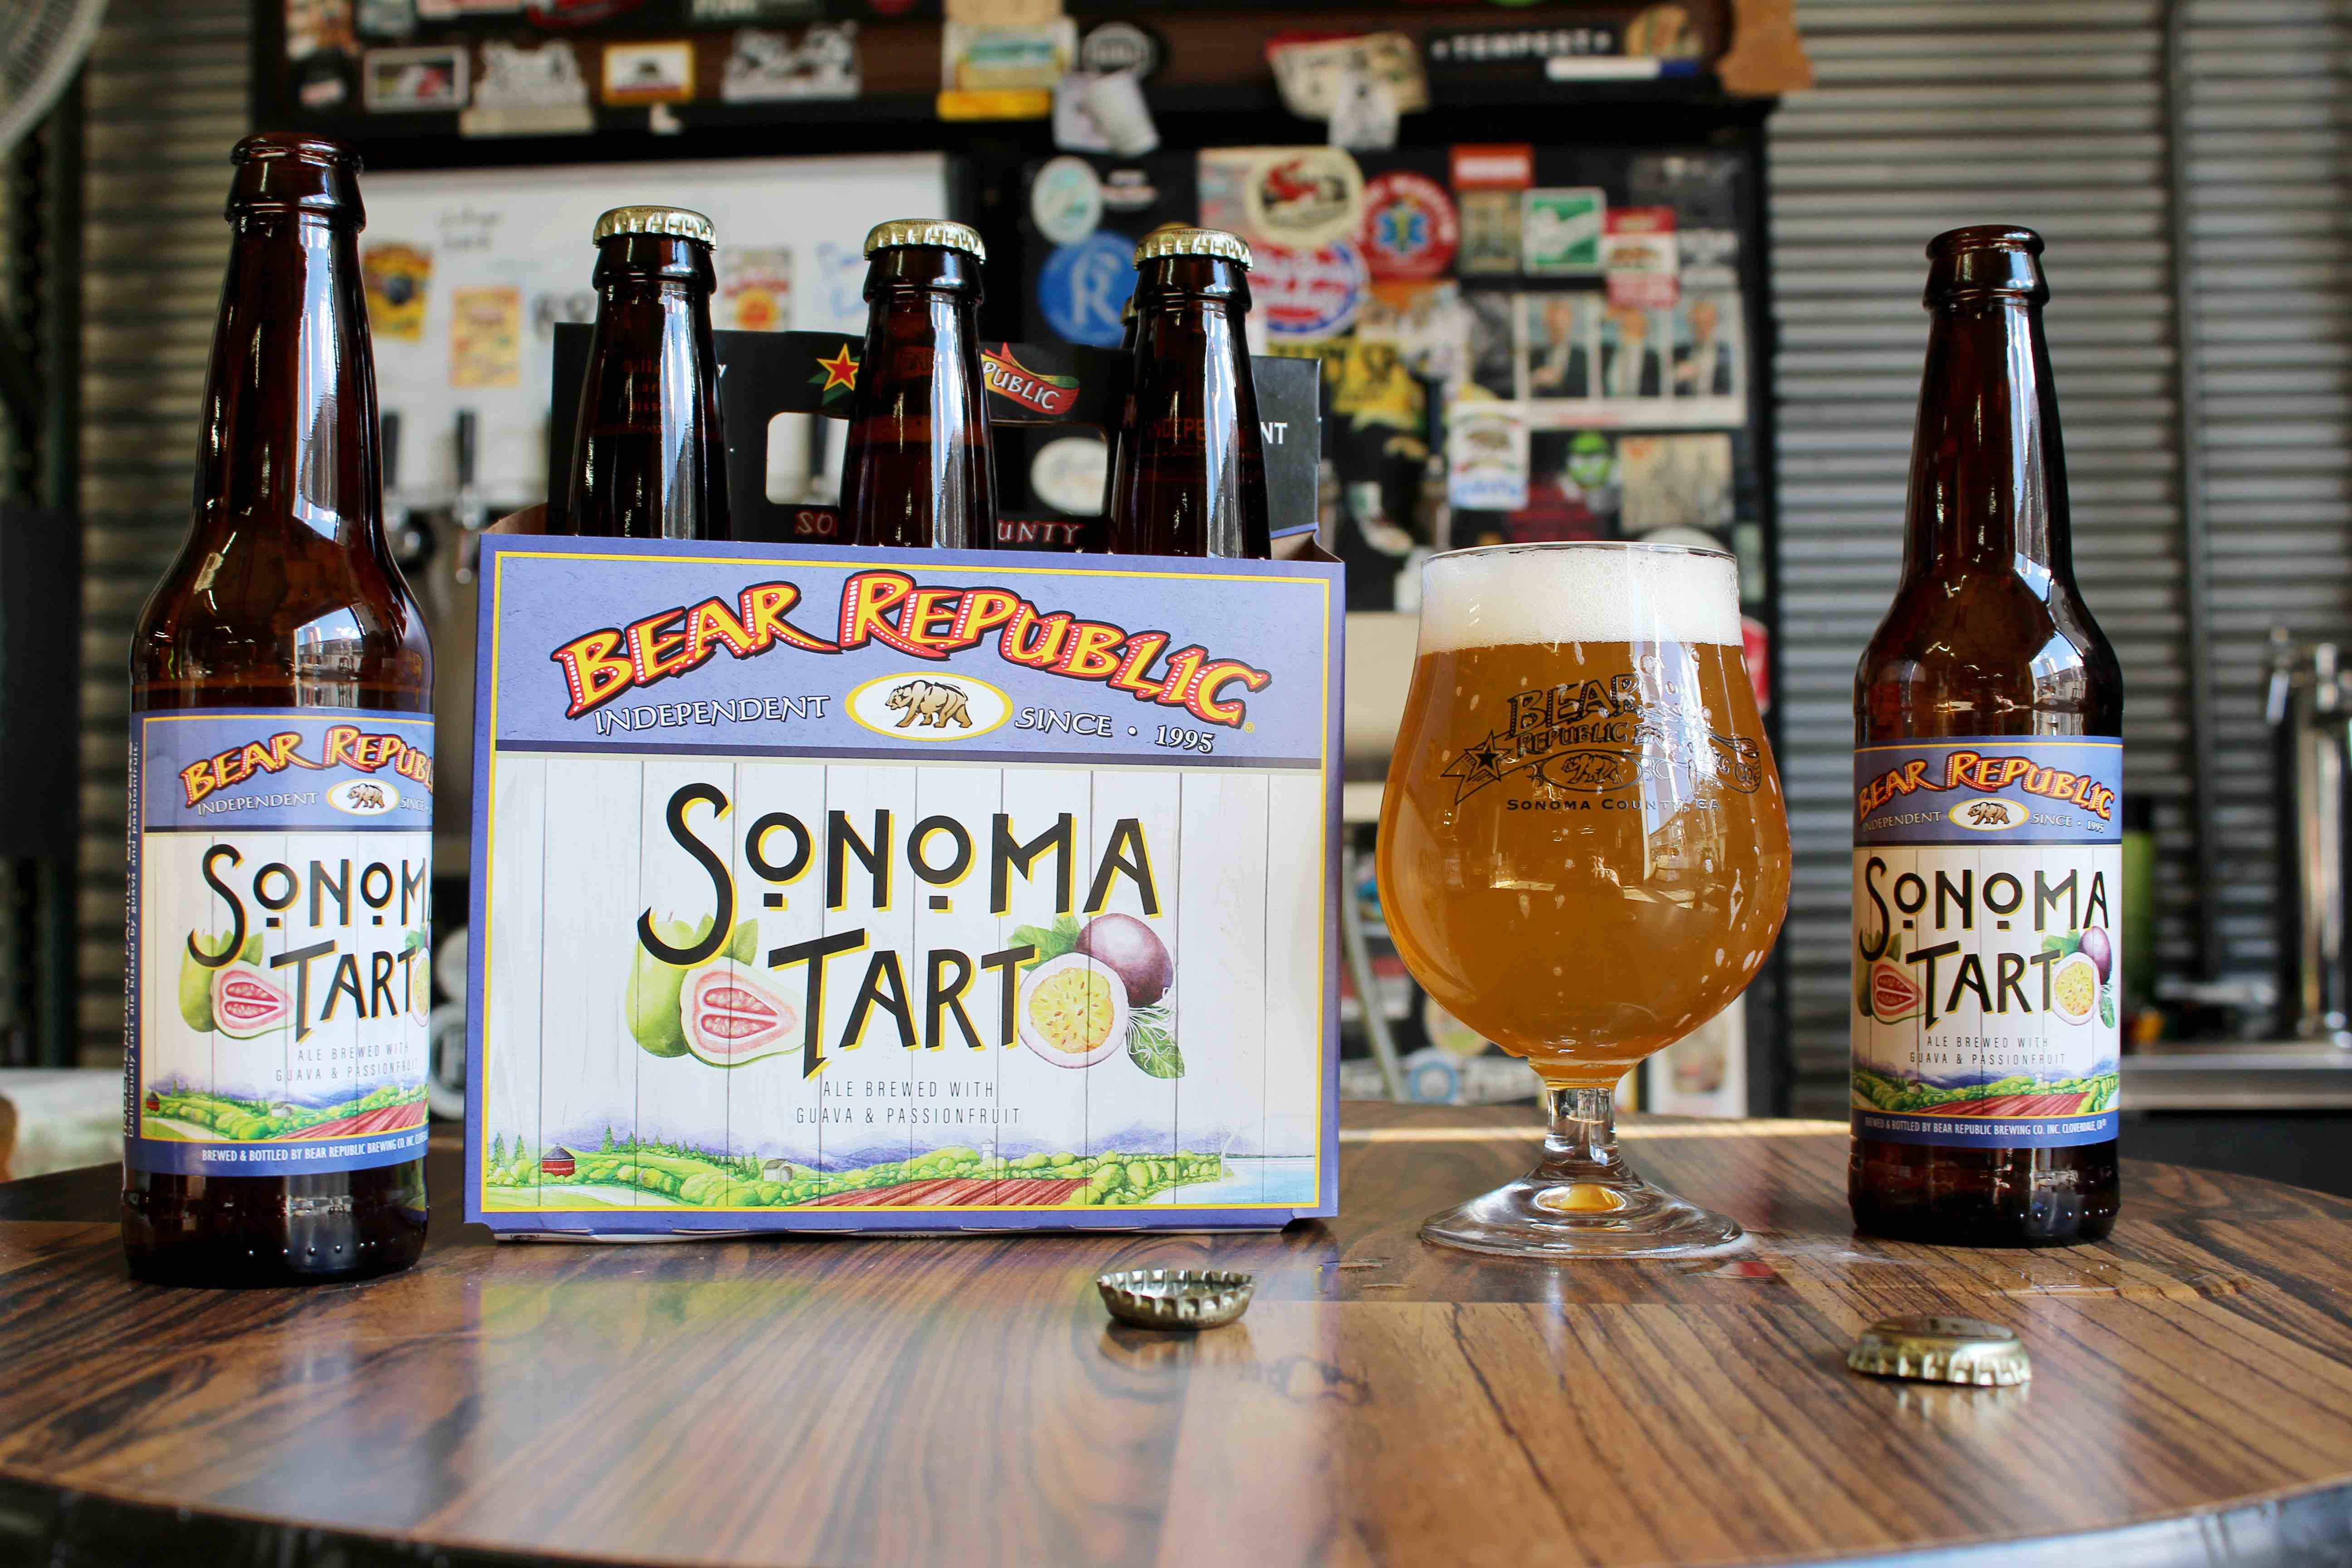 image of Sonoma Tart courtesy of Bear Republic Brewing